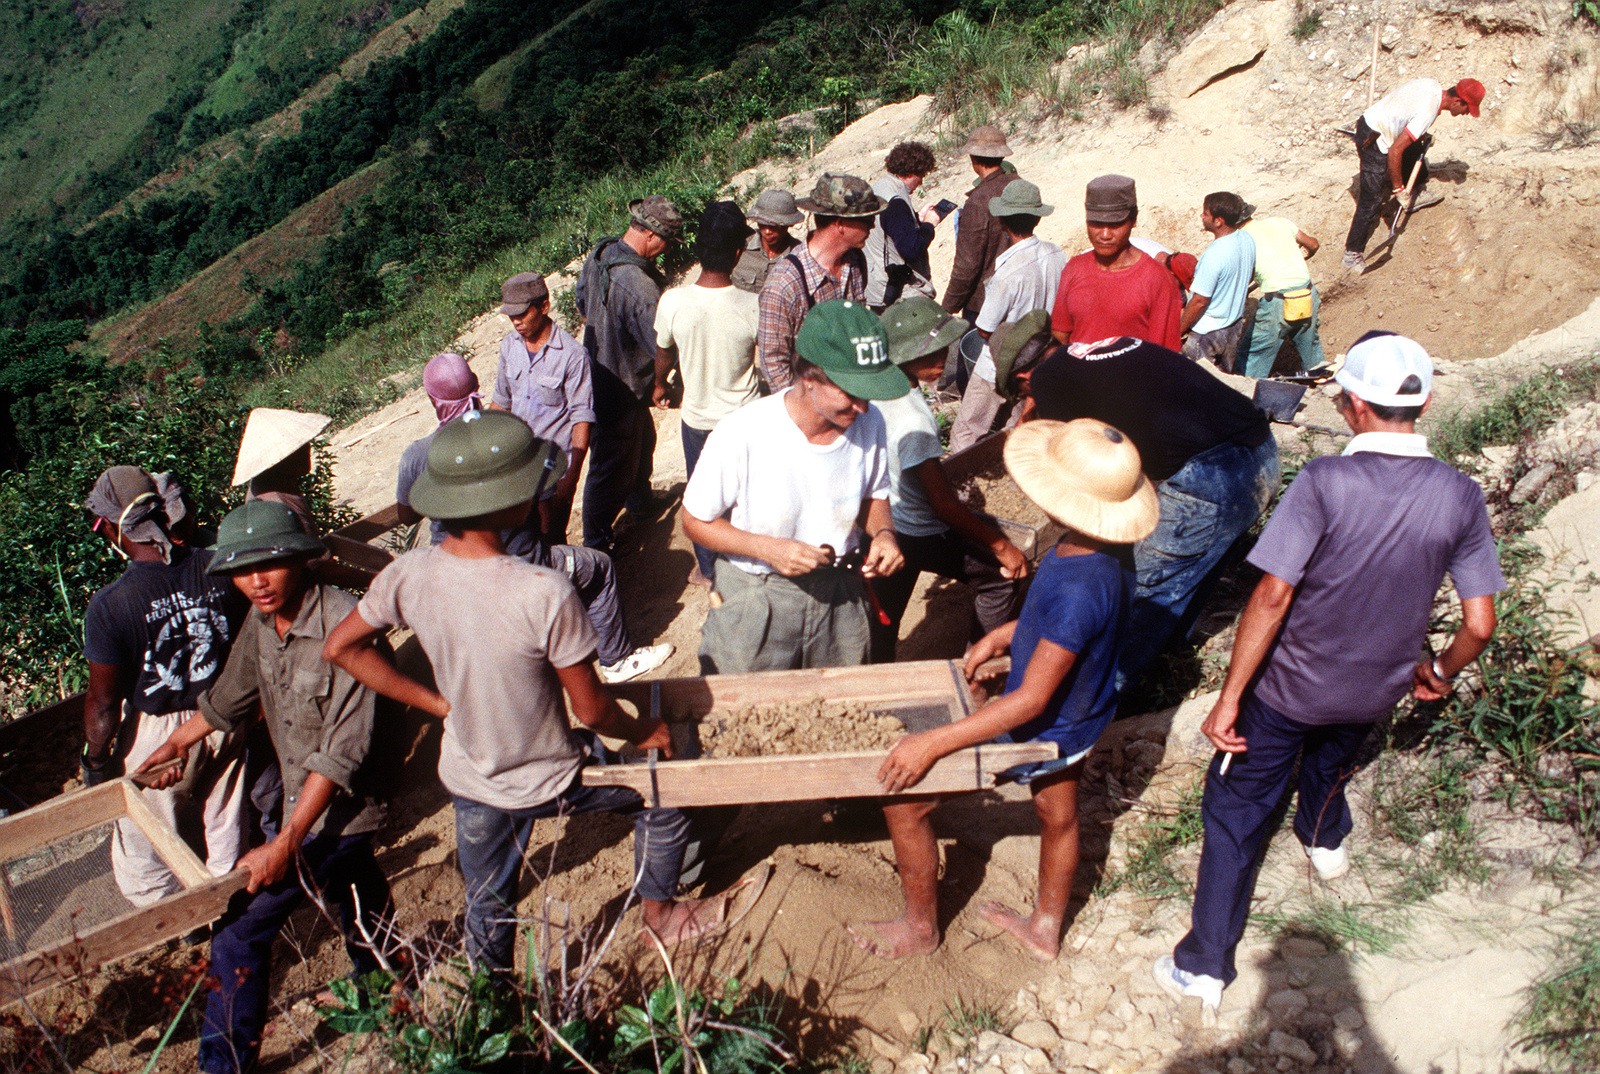 With Joint Combat Casualty Center personnel on hand to gather information, members of a joint U.S./Vietnamese anthropological team prepare to sift through ground and rock fragments in an effort to locate personal effects of an American pilot whose A-7 Corsair II aircraft crashed at the site on Dong Nua Mountain, Quang Binh Province during the war in Vietnam.